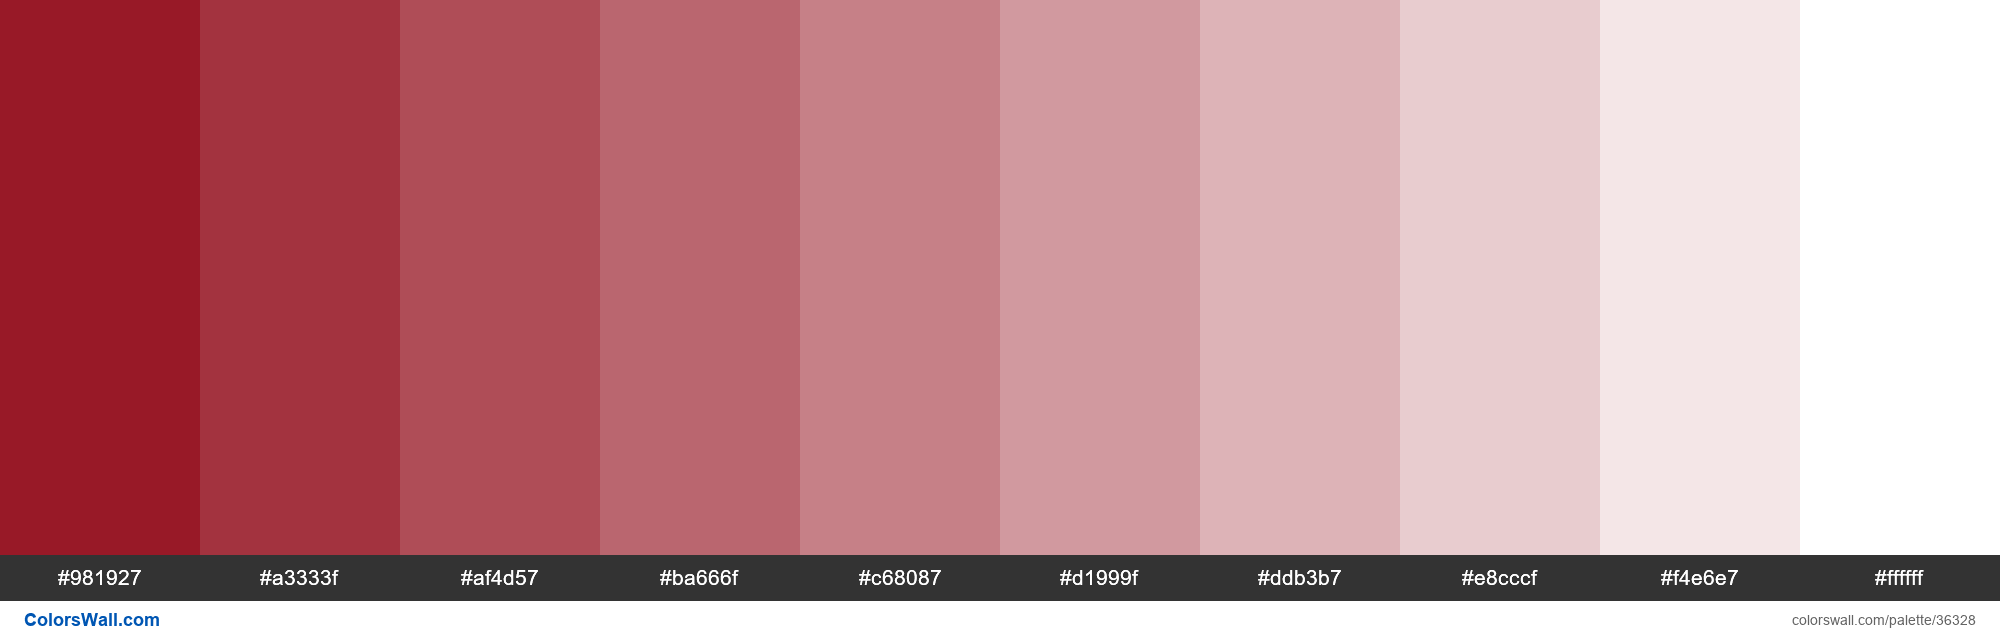 Tints XKCD Color crimson #8c000f hex - #36328